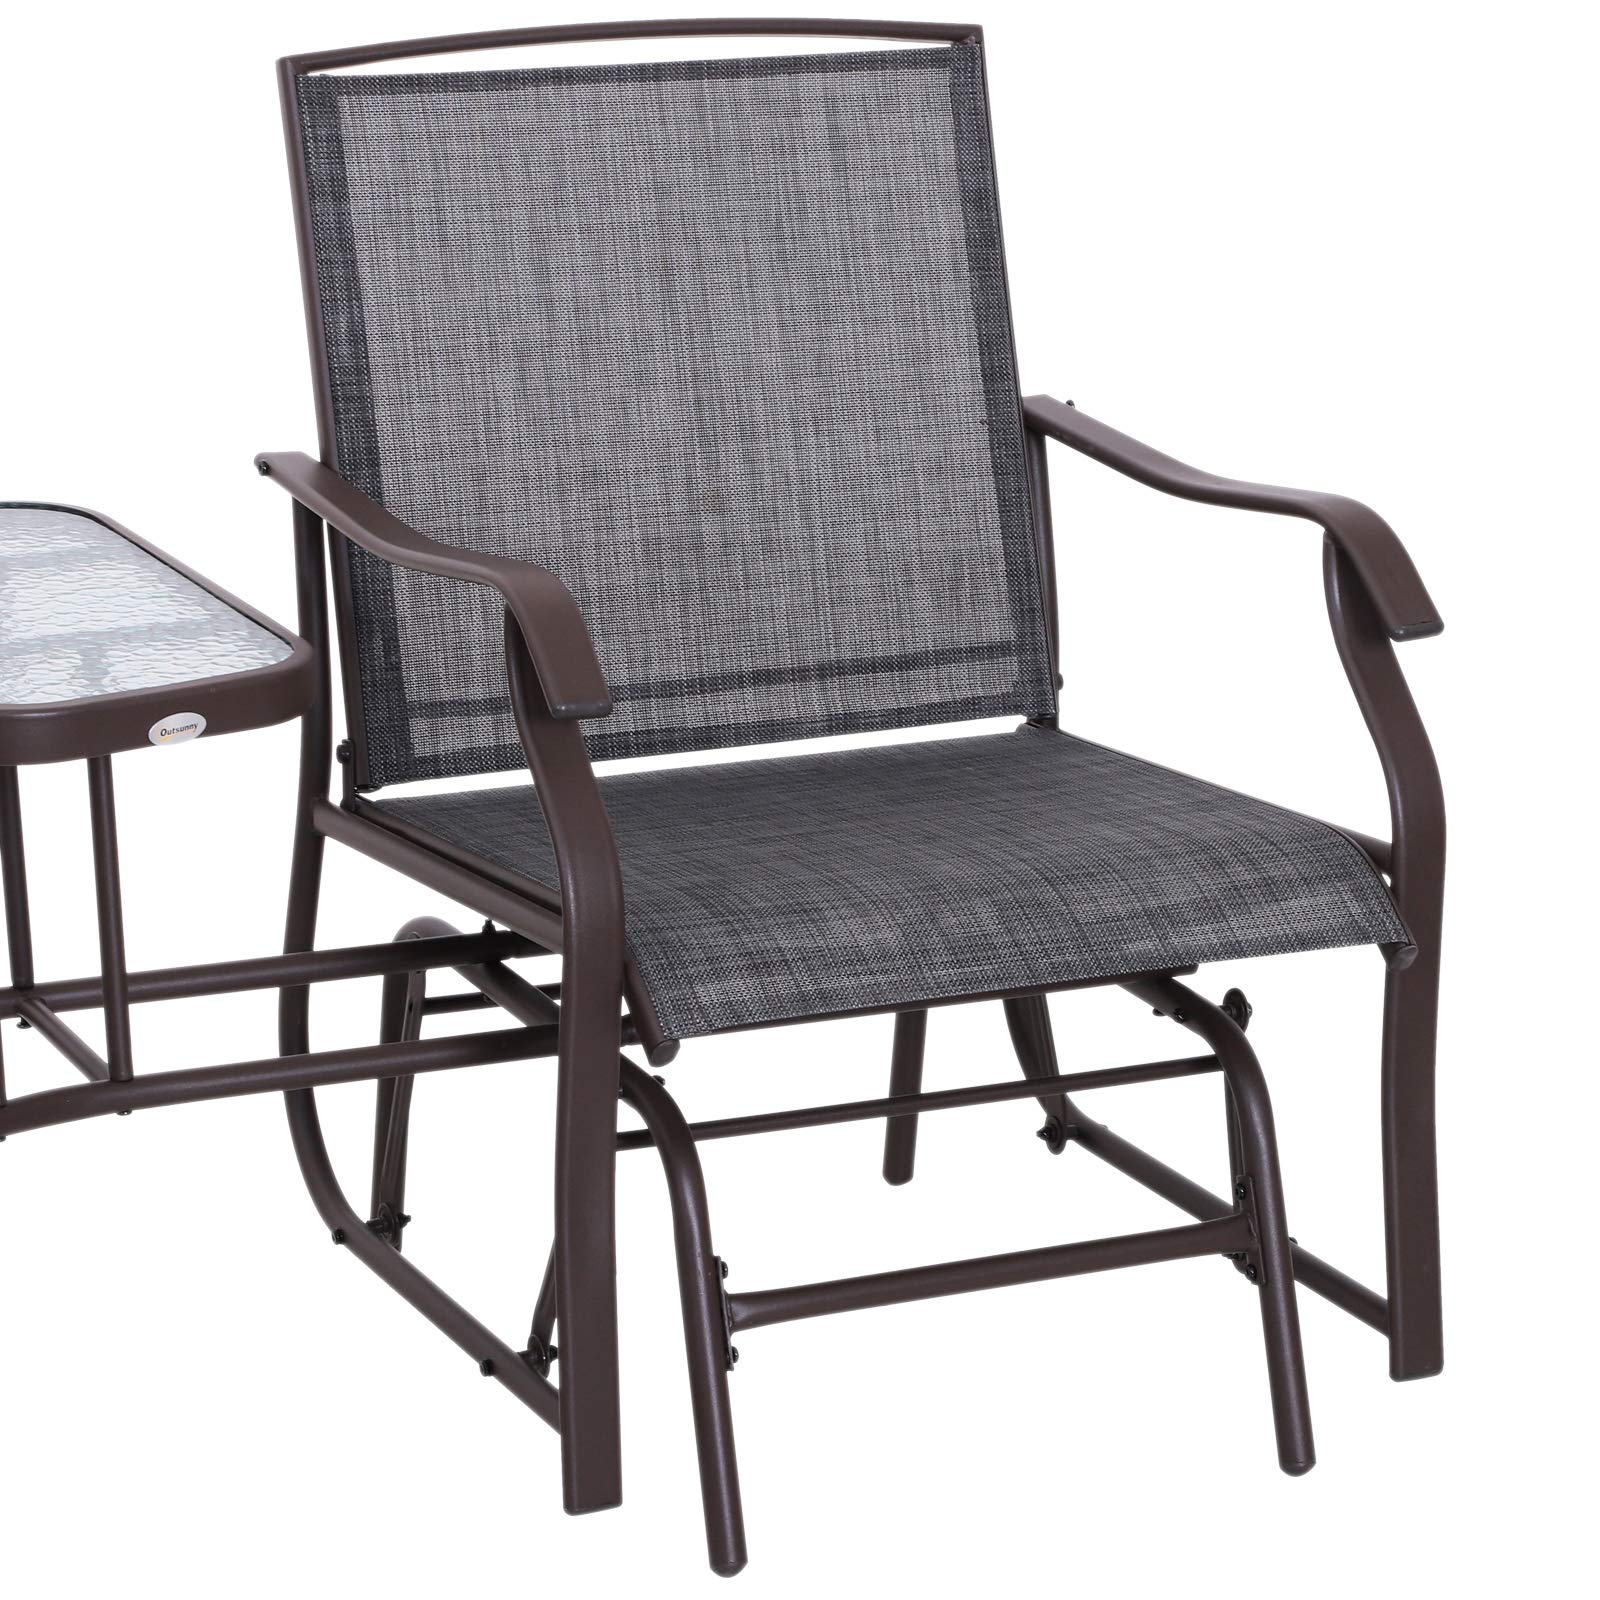 Outsunny 2 Person Outdoor Sling Fabric Double Glider Rocker Chair with Table by Outsunny (Image #4)